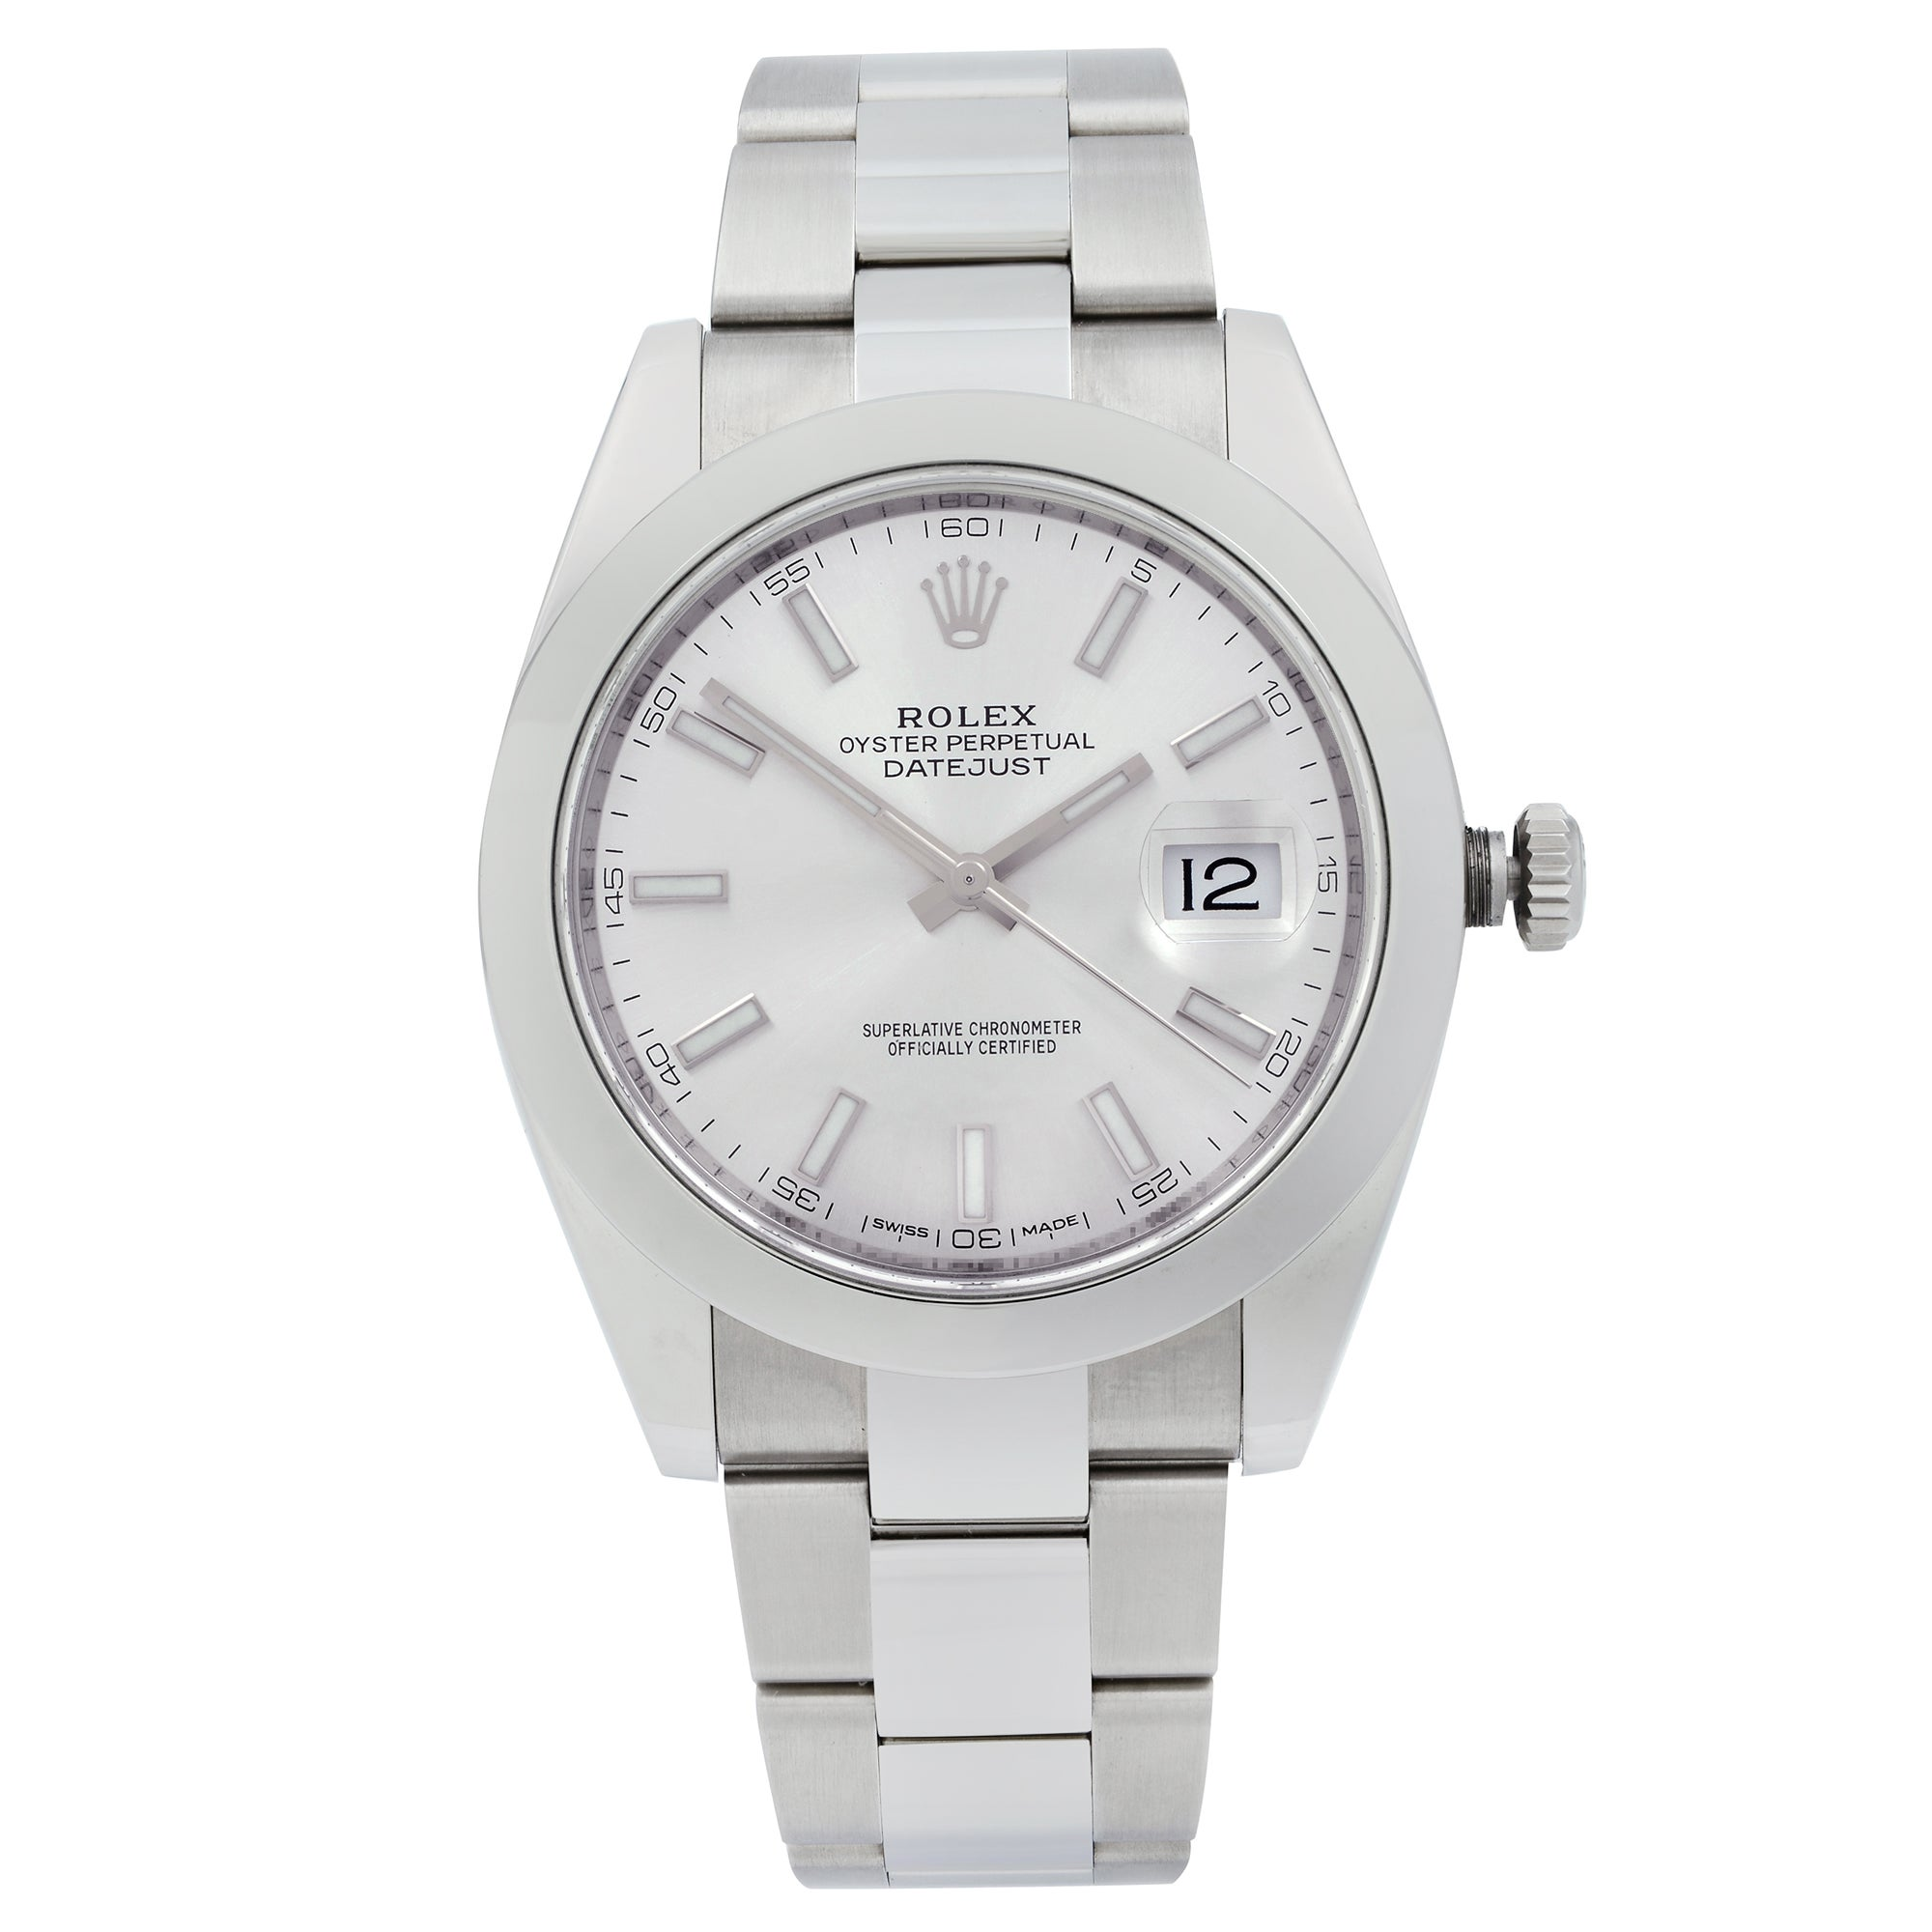 Rolex Datejust Steel Silver Index Dial Smooth Automatic Men's Watch 126300